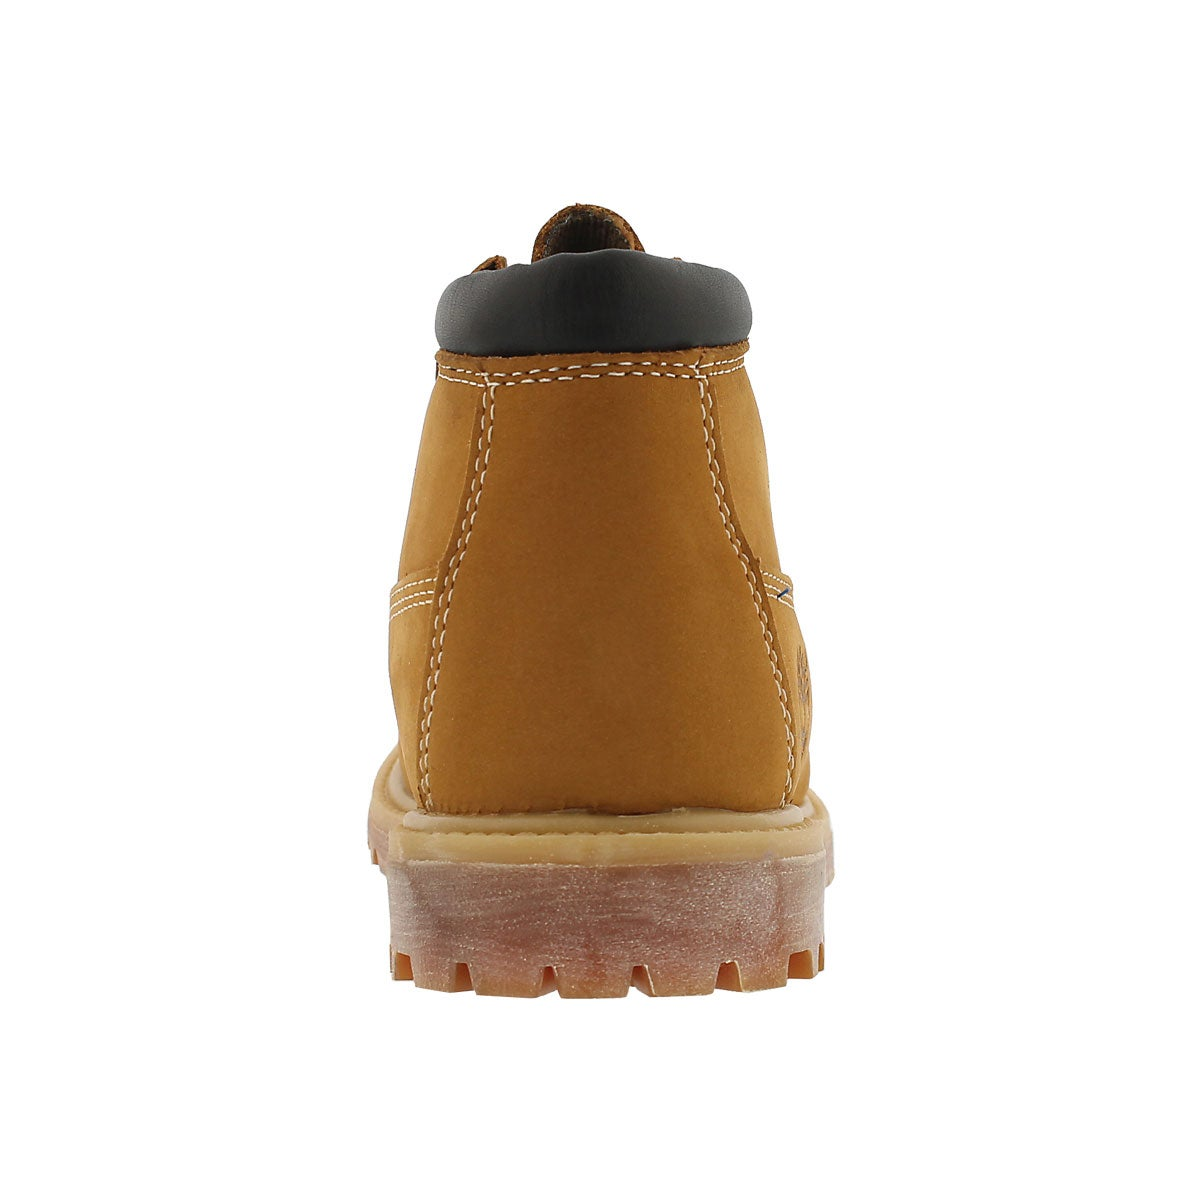 Lds Nellie wheat 4 eye chukka boot